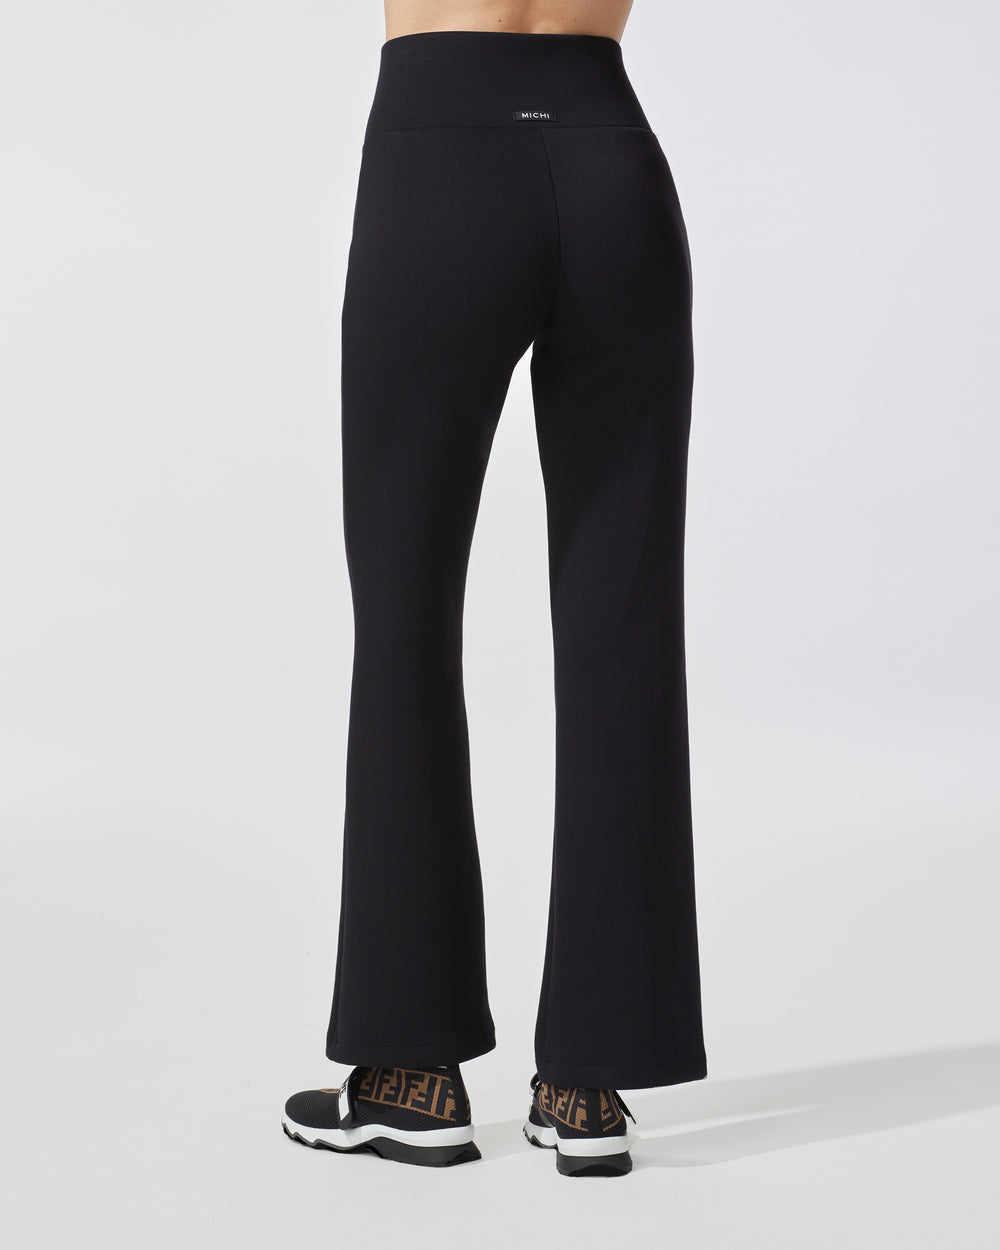 Rebel Pant - Black